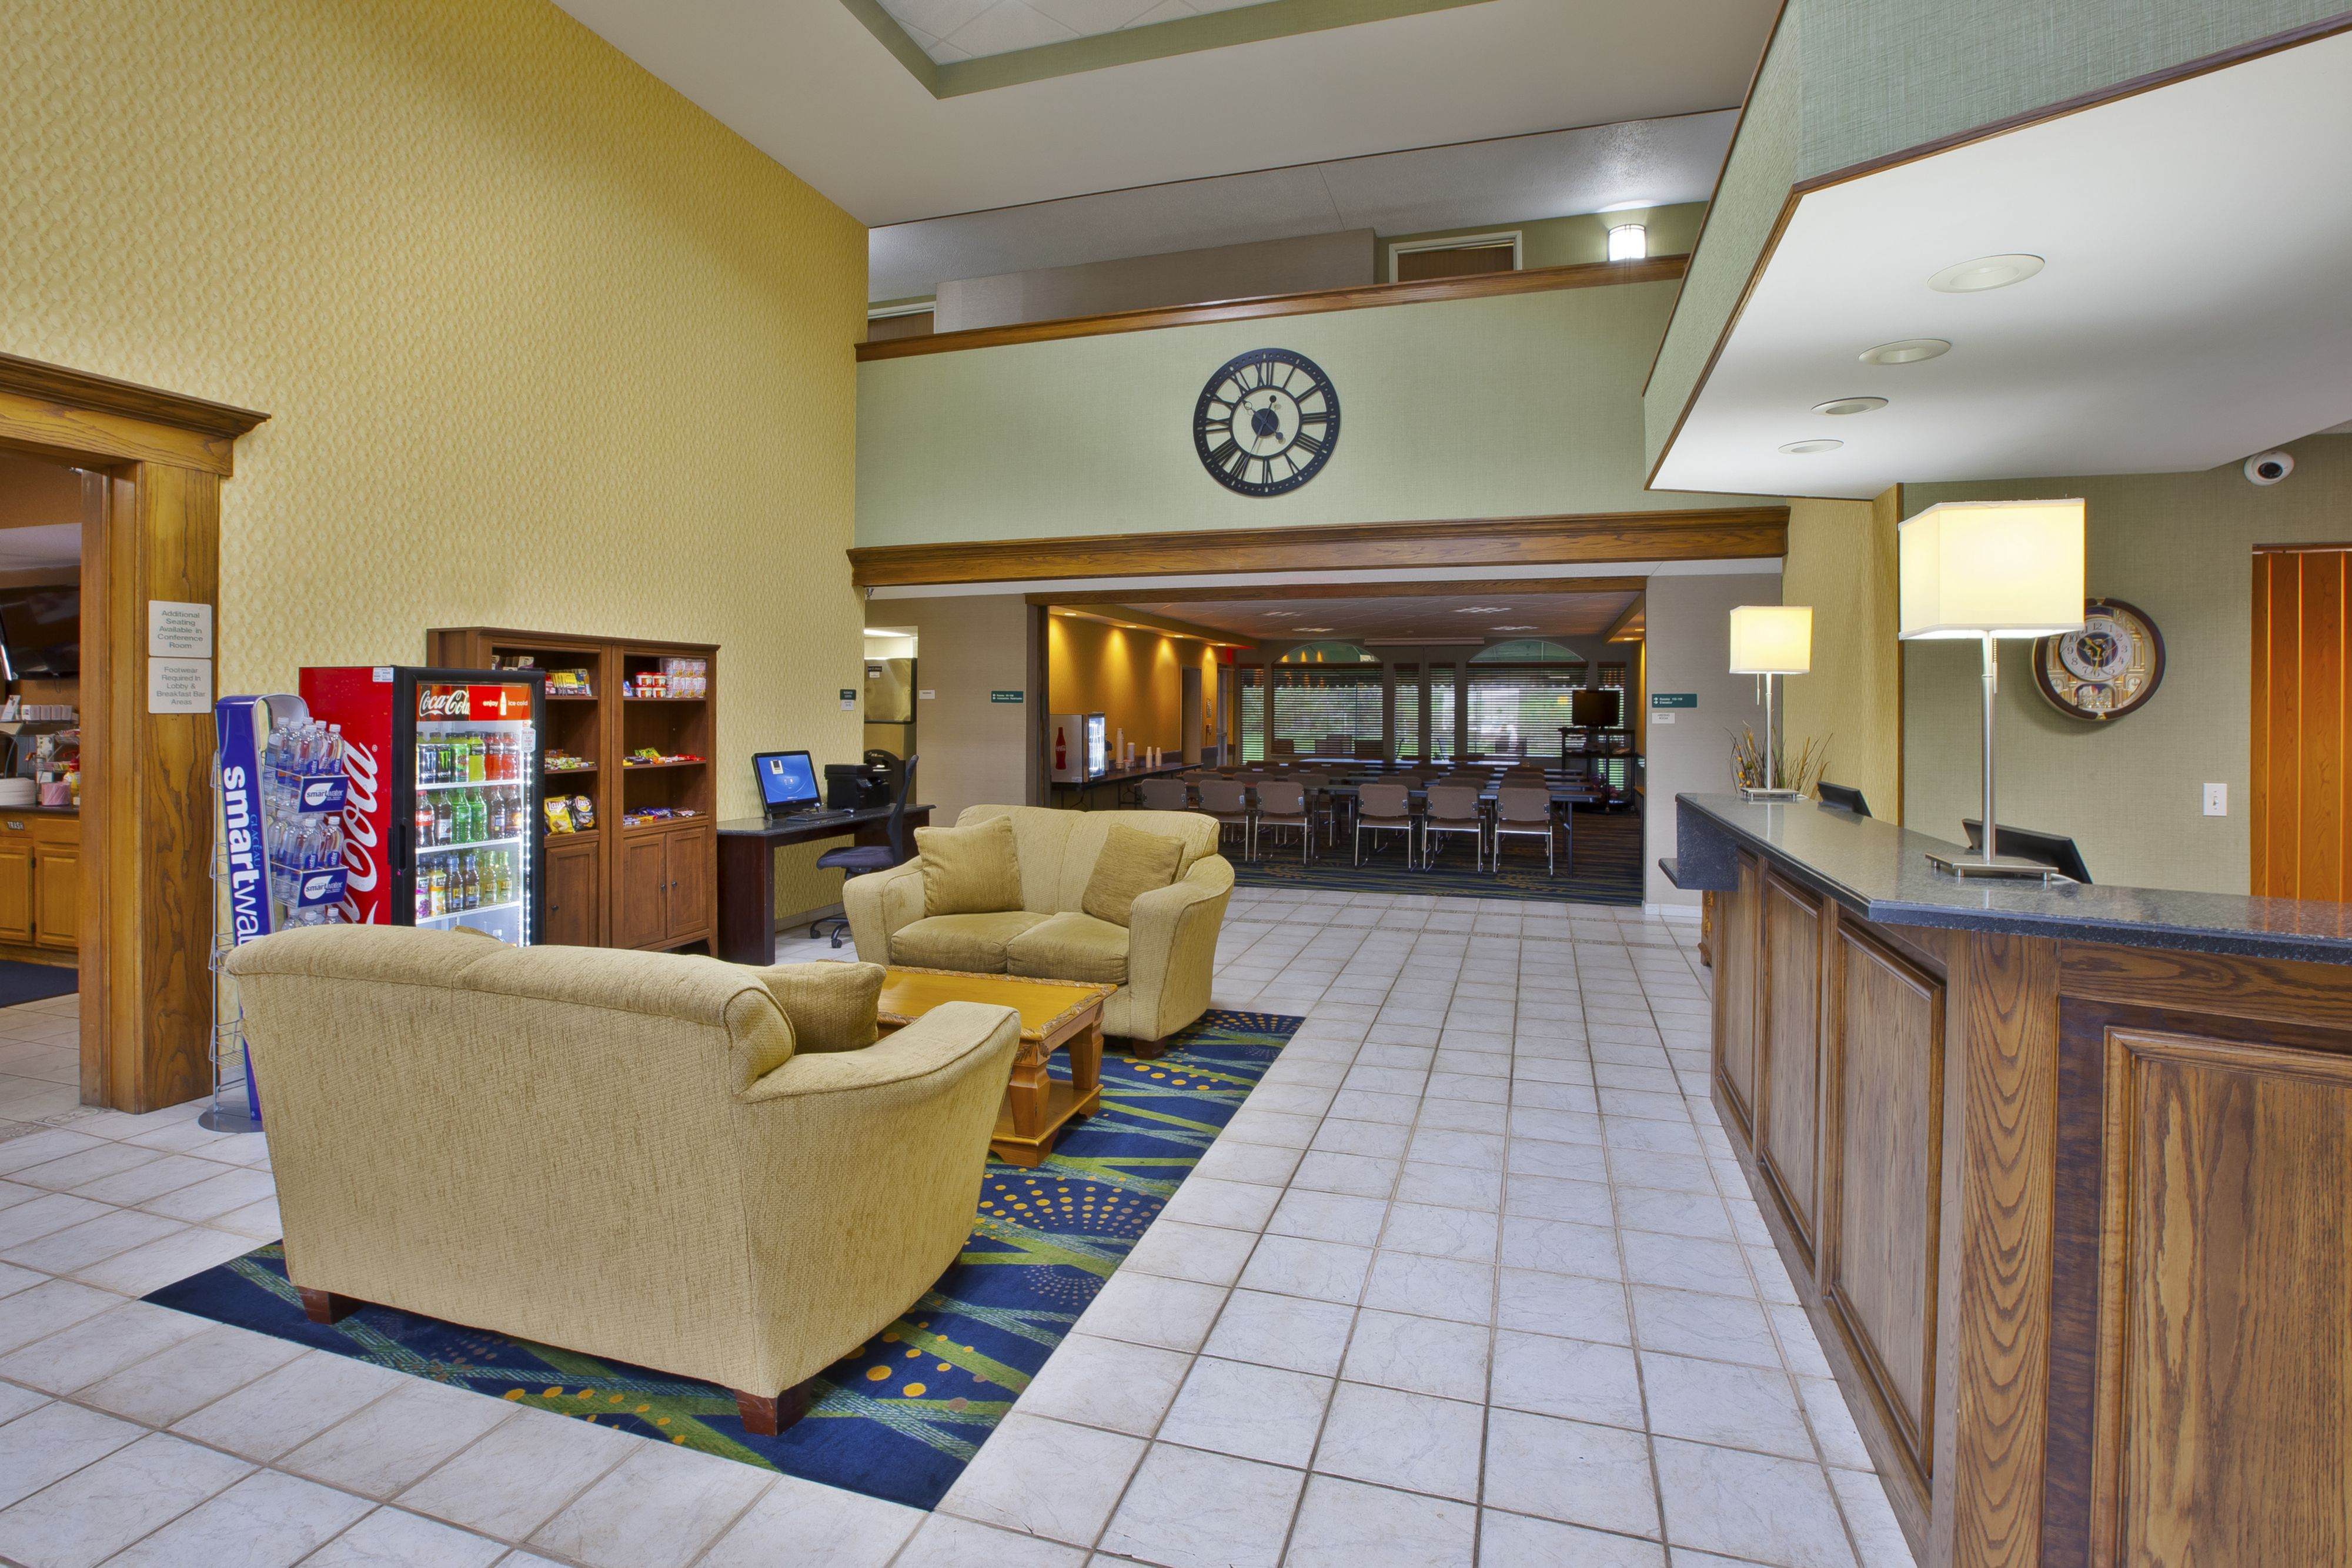 Holiday Inn Express Irwin (Pa Tpk Exit 67) image 4